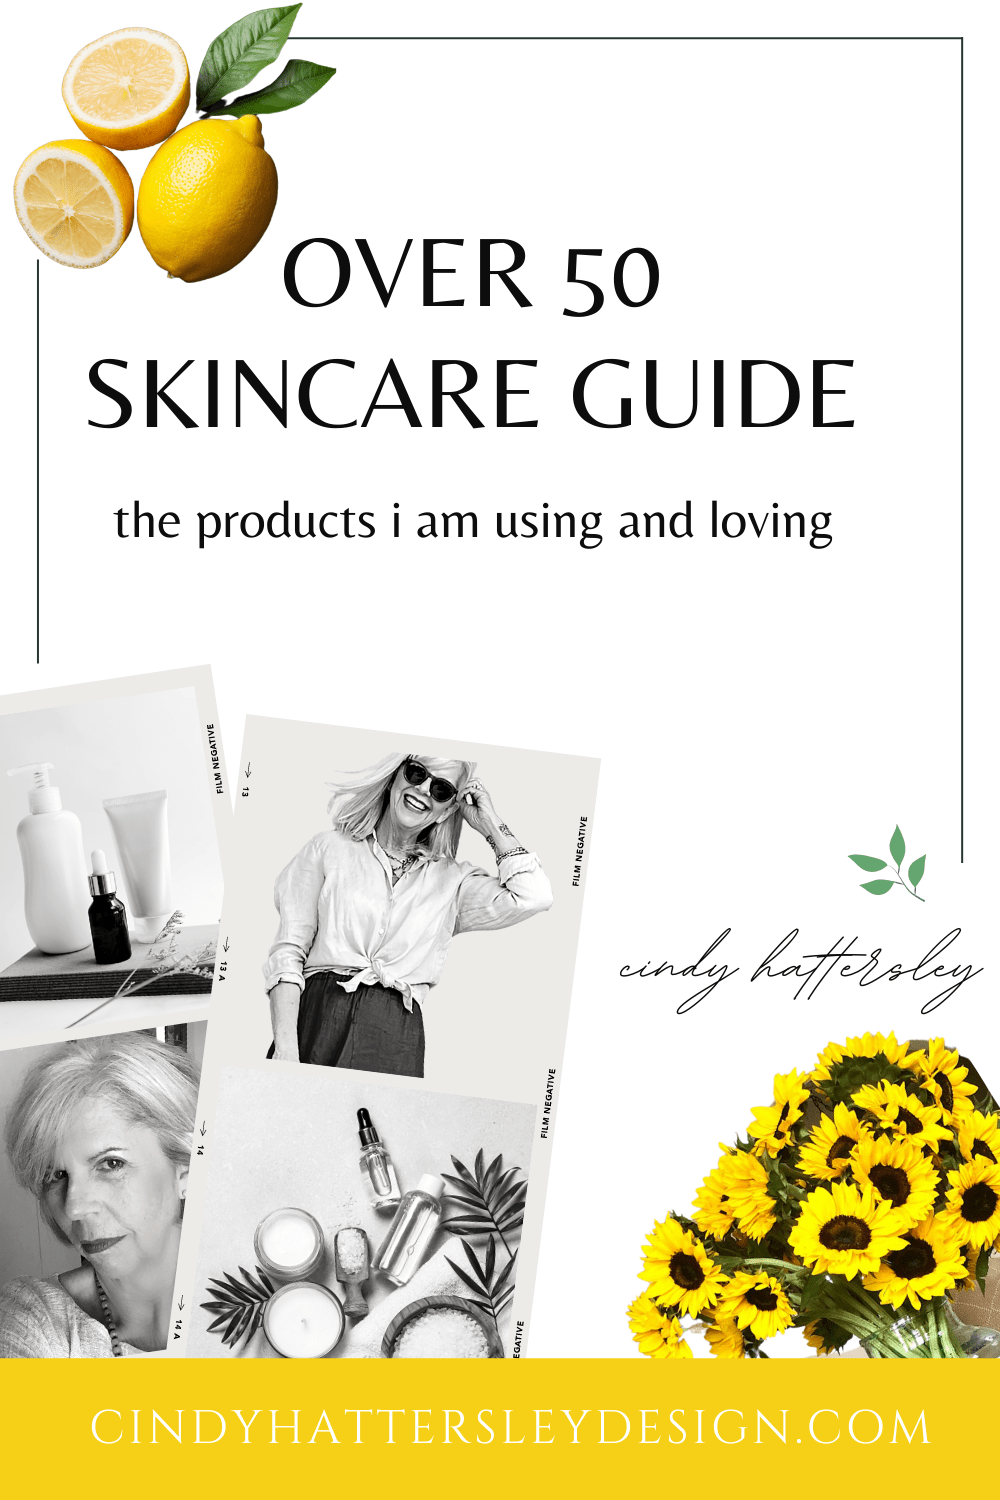 Cindy Hattersley's Over 50 Skincare Guide